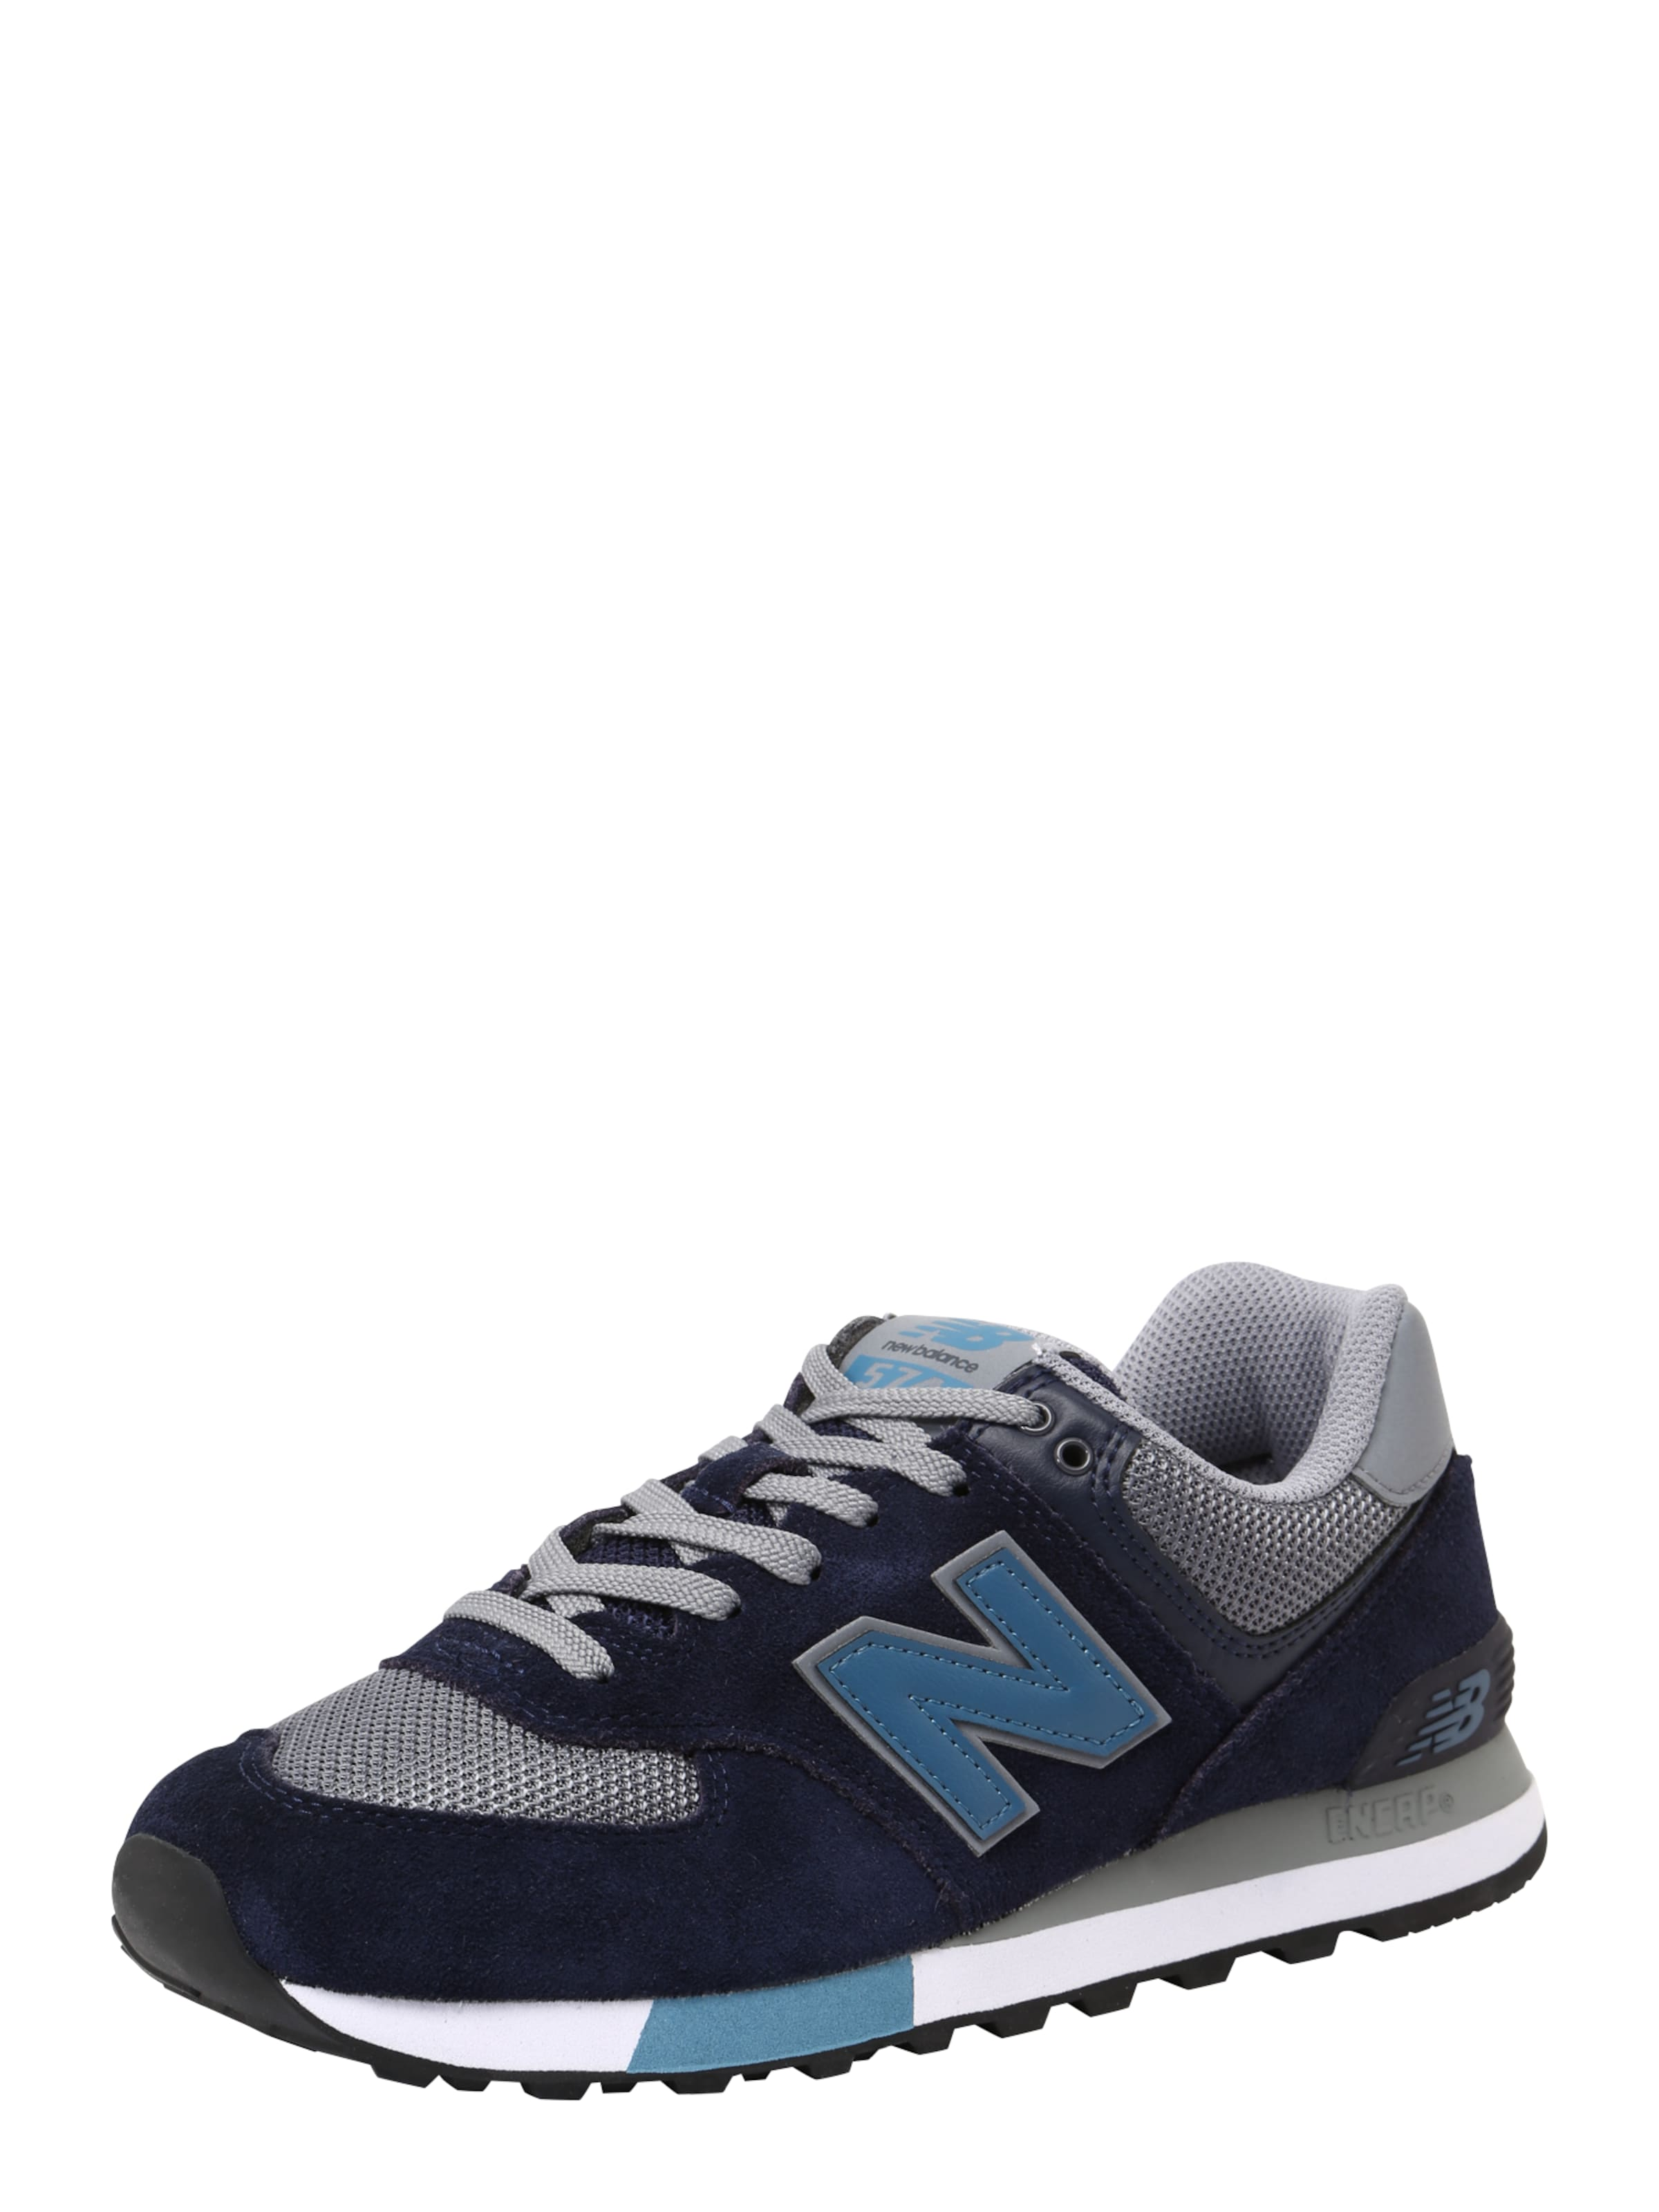 New 574' Balance In Sneaker MarineGrau 'ml OkXuZTPi